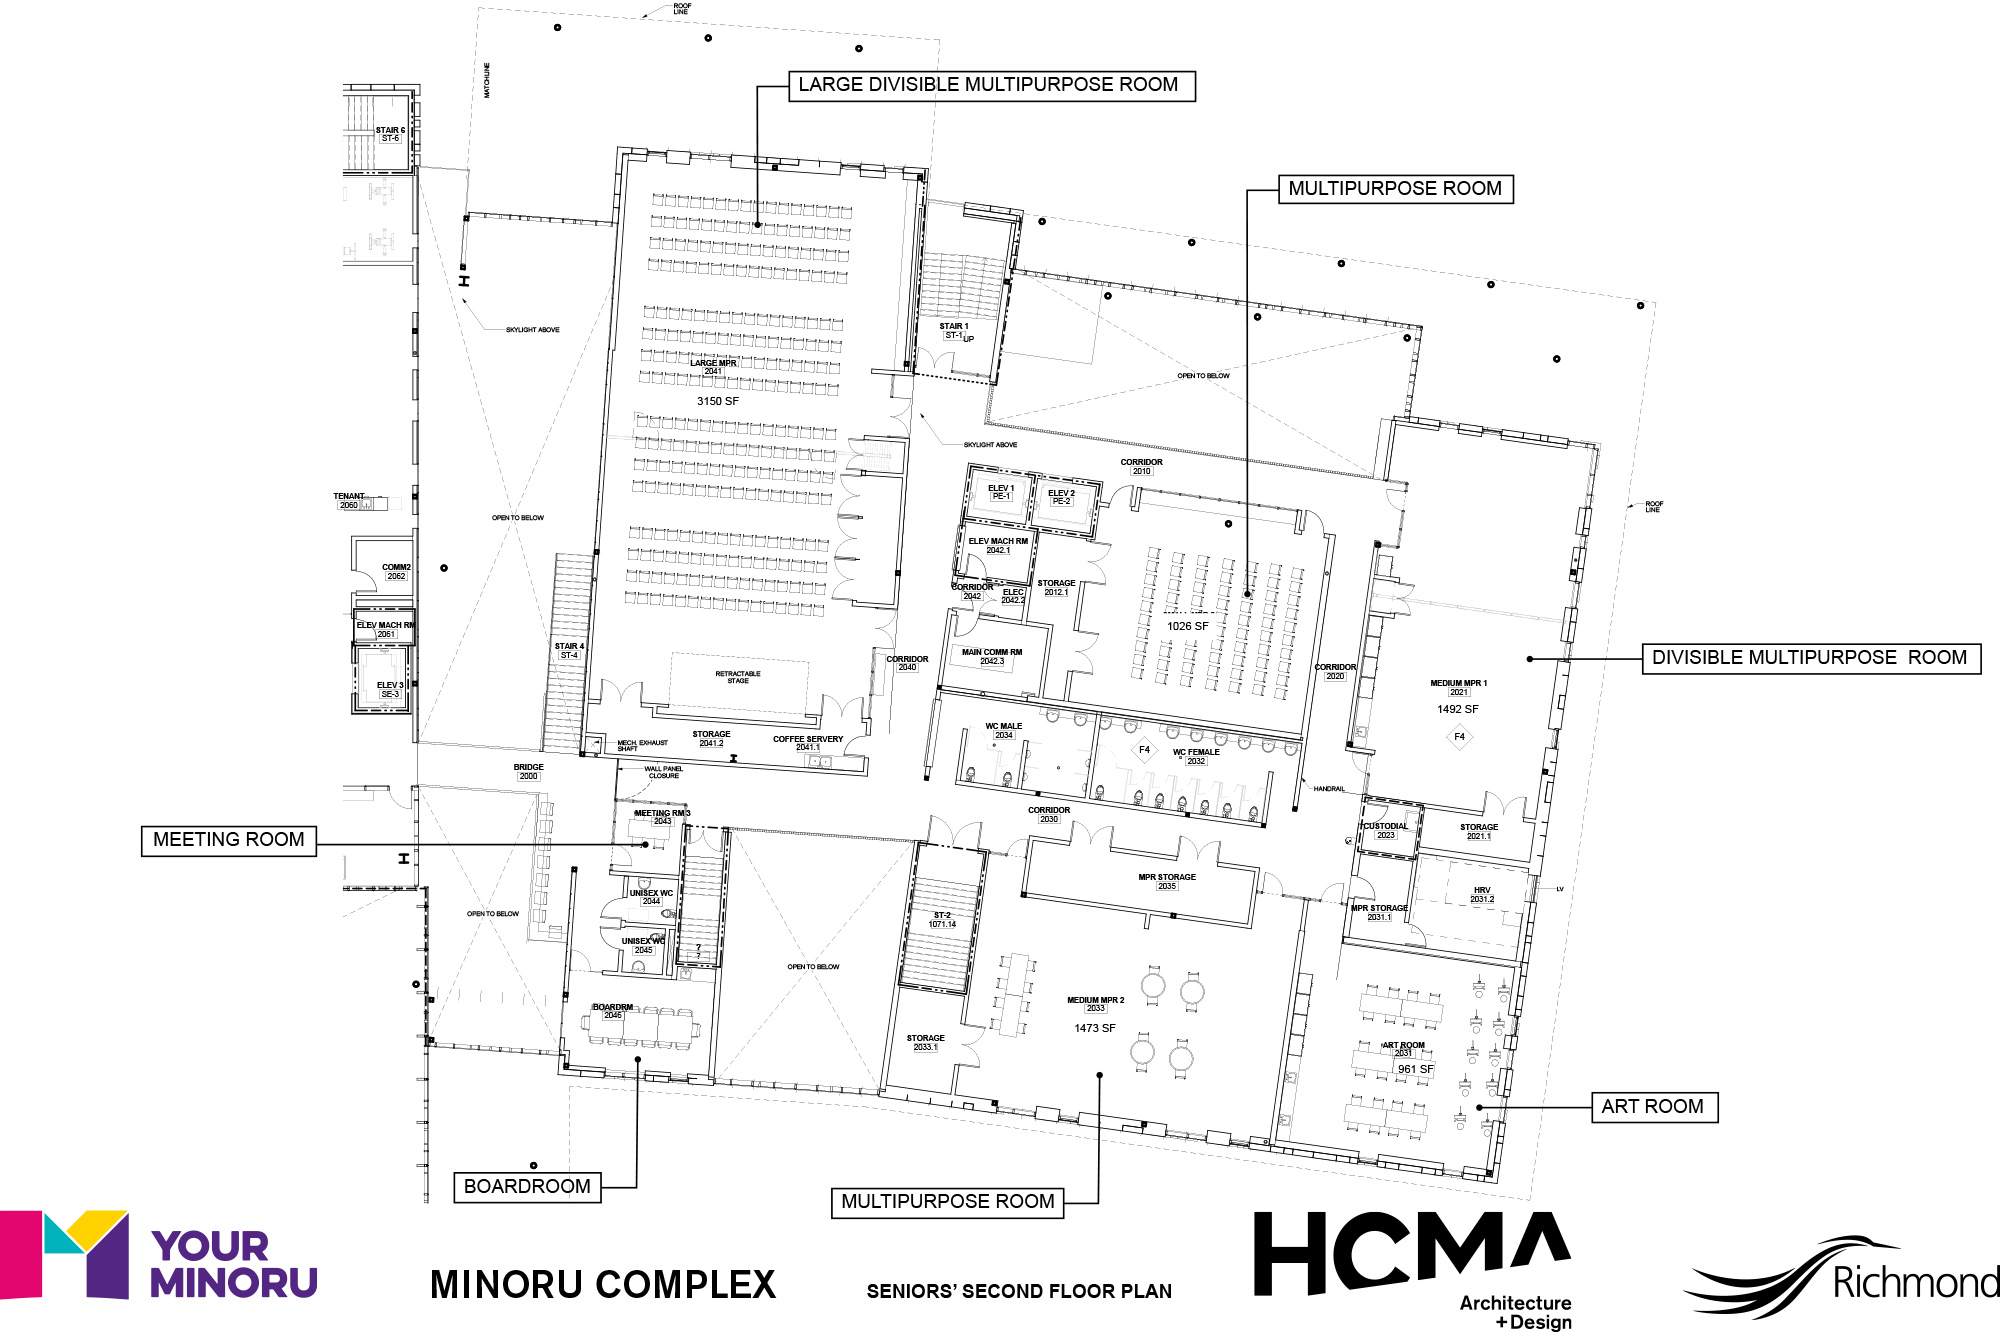 Minoru Complex - Seniors Second Floor Plan - January 2016